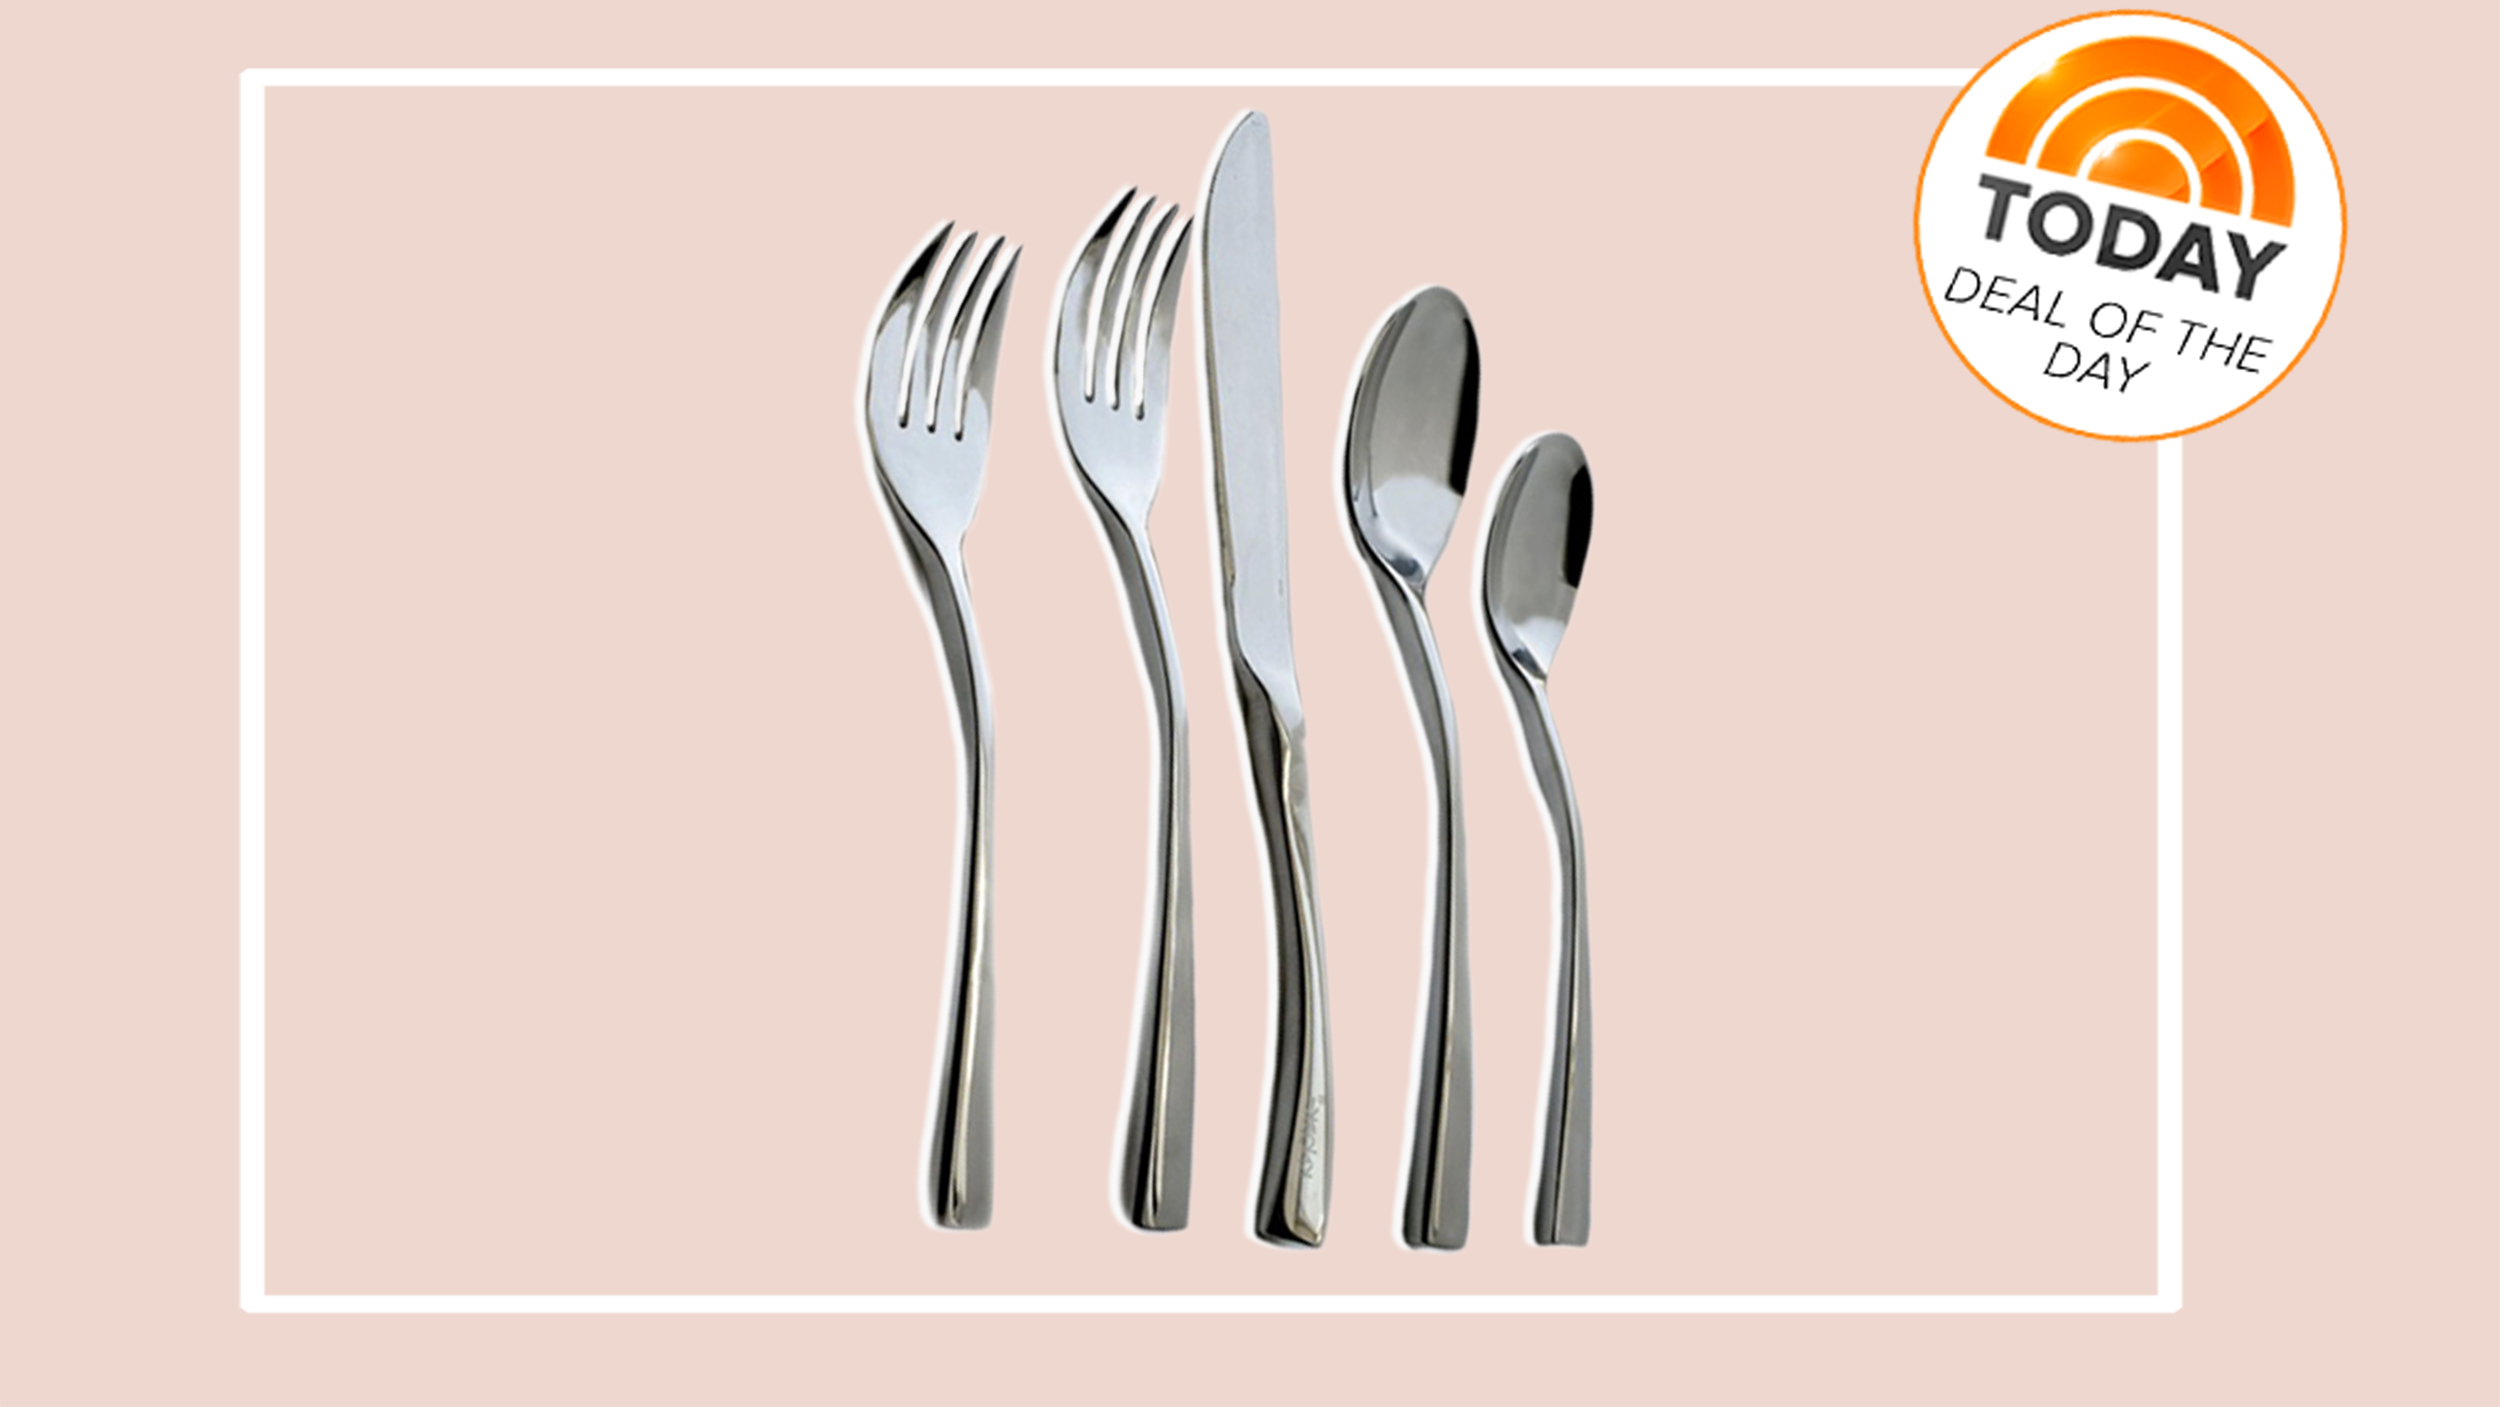 sc 1 st  Today & Deal of the Day: 50 percent off Knork 20-piece flatware set - TODAY.com